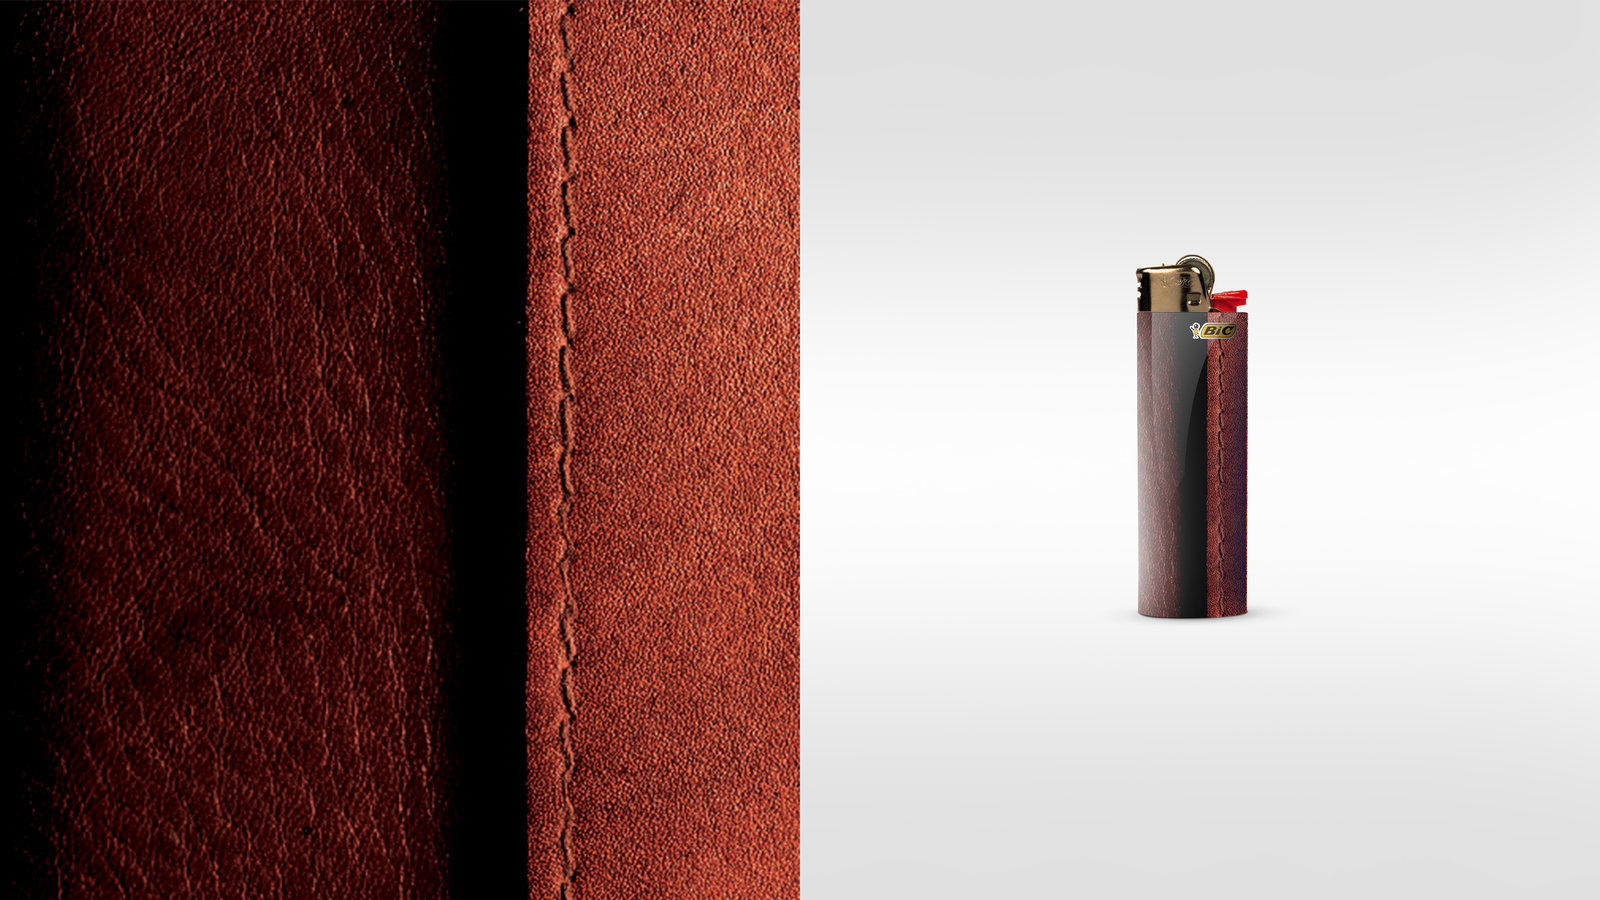 Lighter with texture leather 1600 0x0x5000x2813 q85